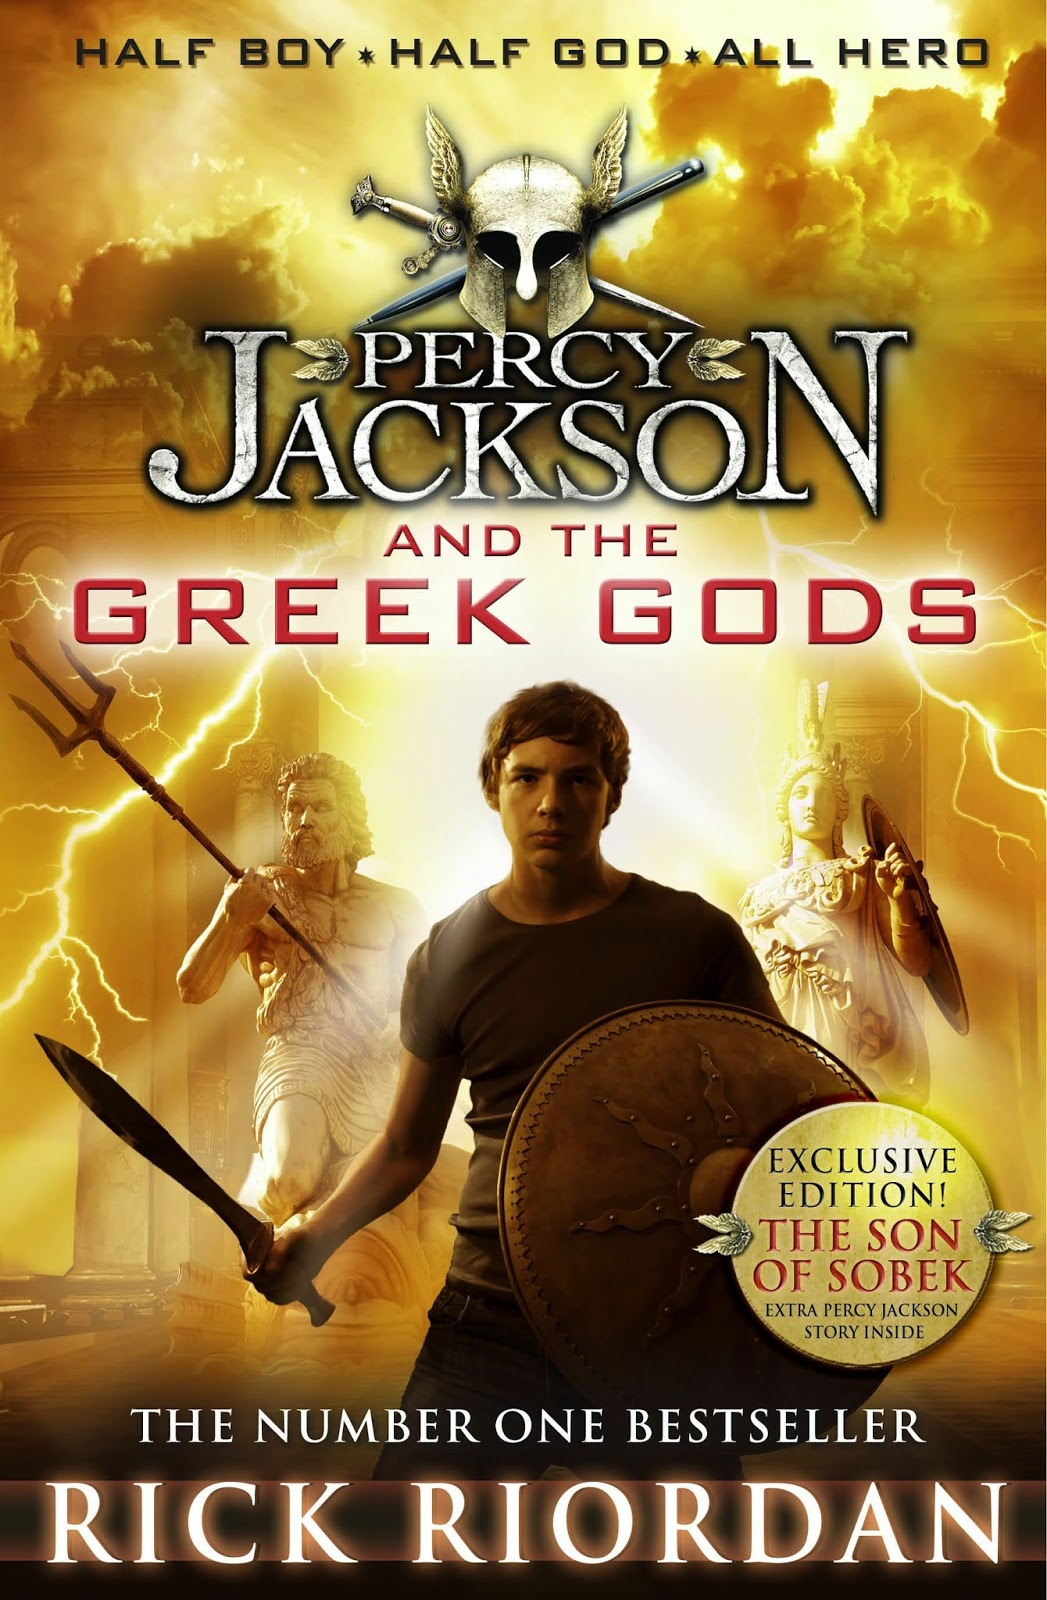 Portada británica de Percy Jackson and the Greek Gods